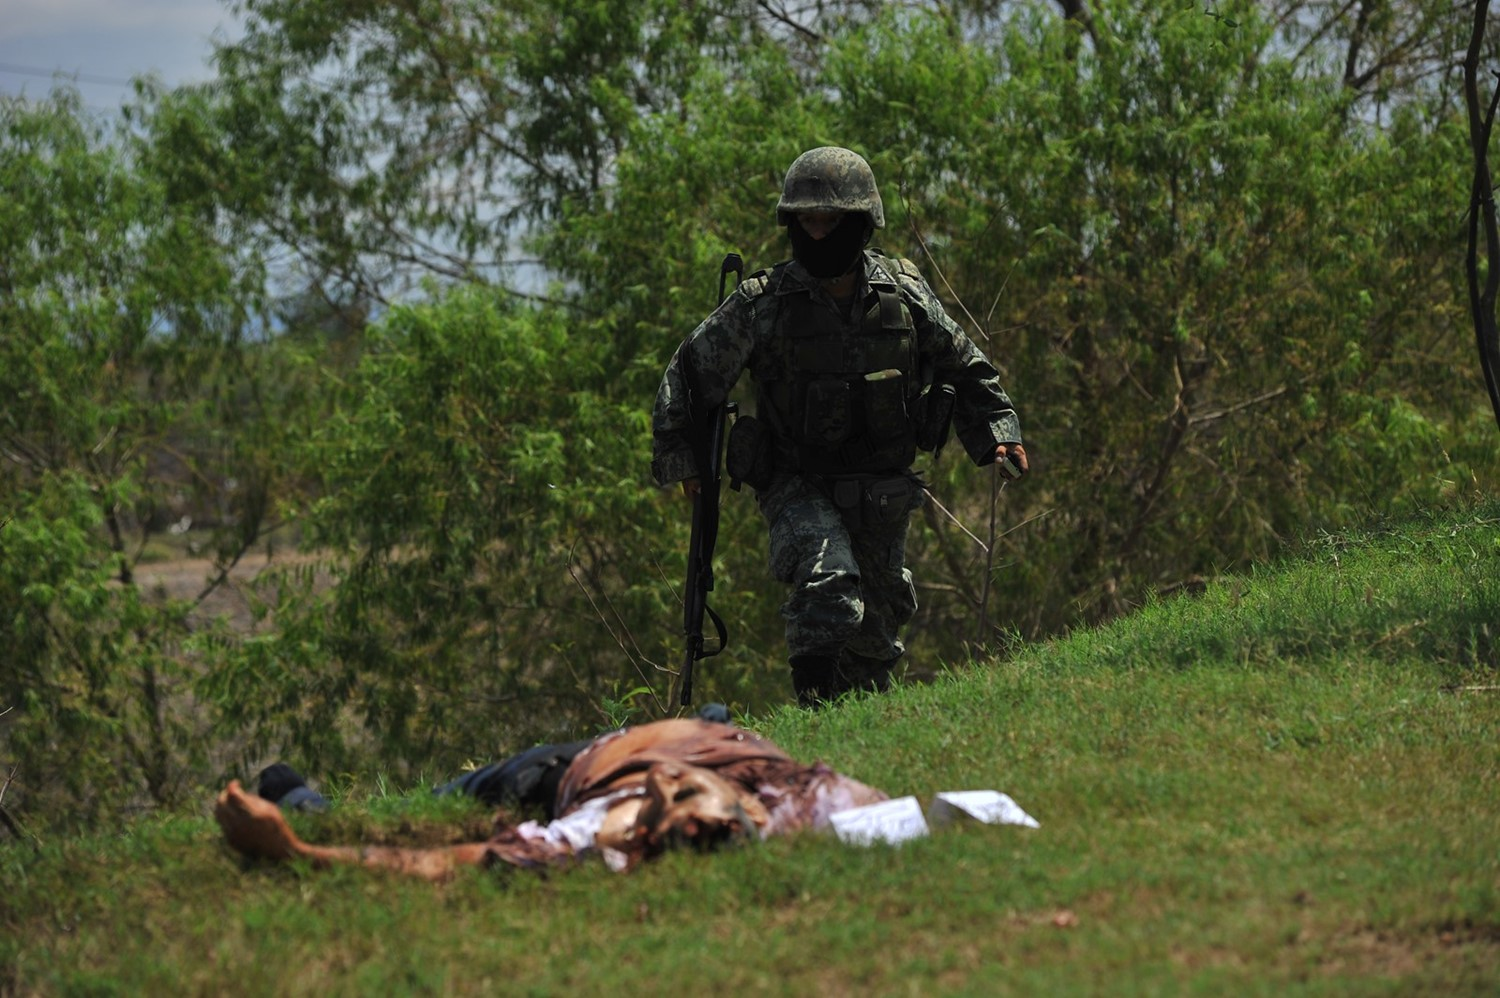 photo 9 - soldier and body